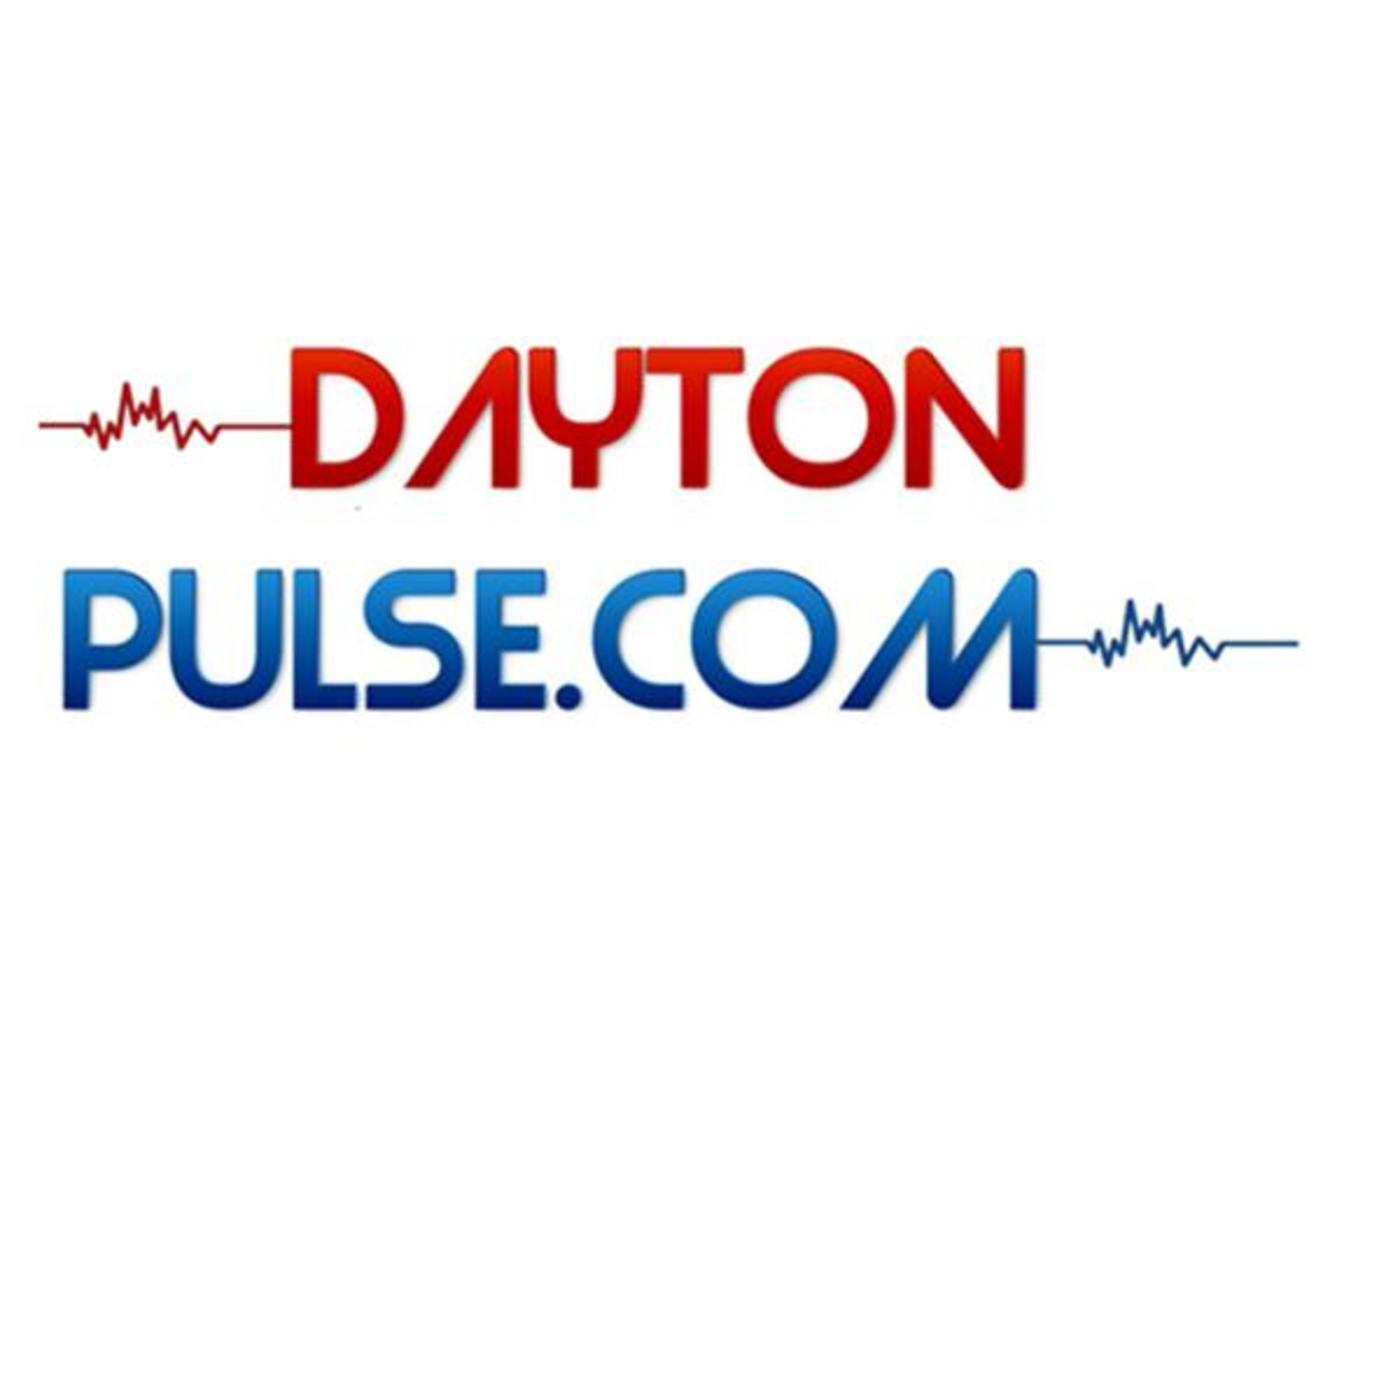 DaytonPulse.com Small Biz Interview